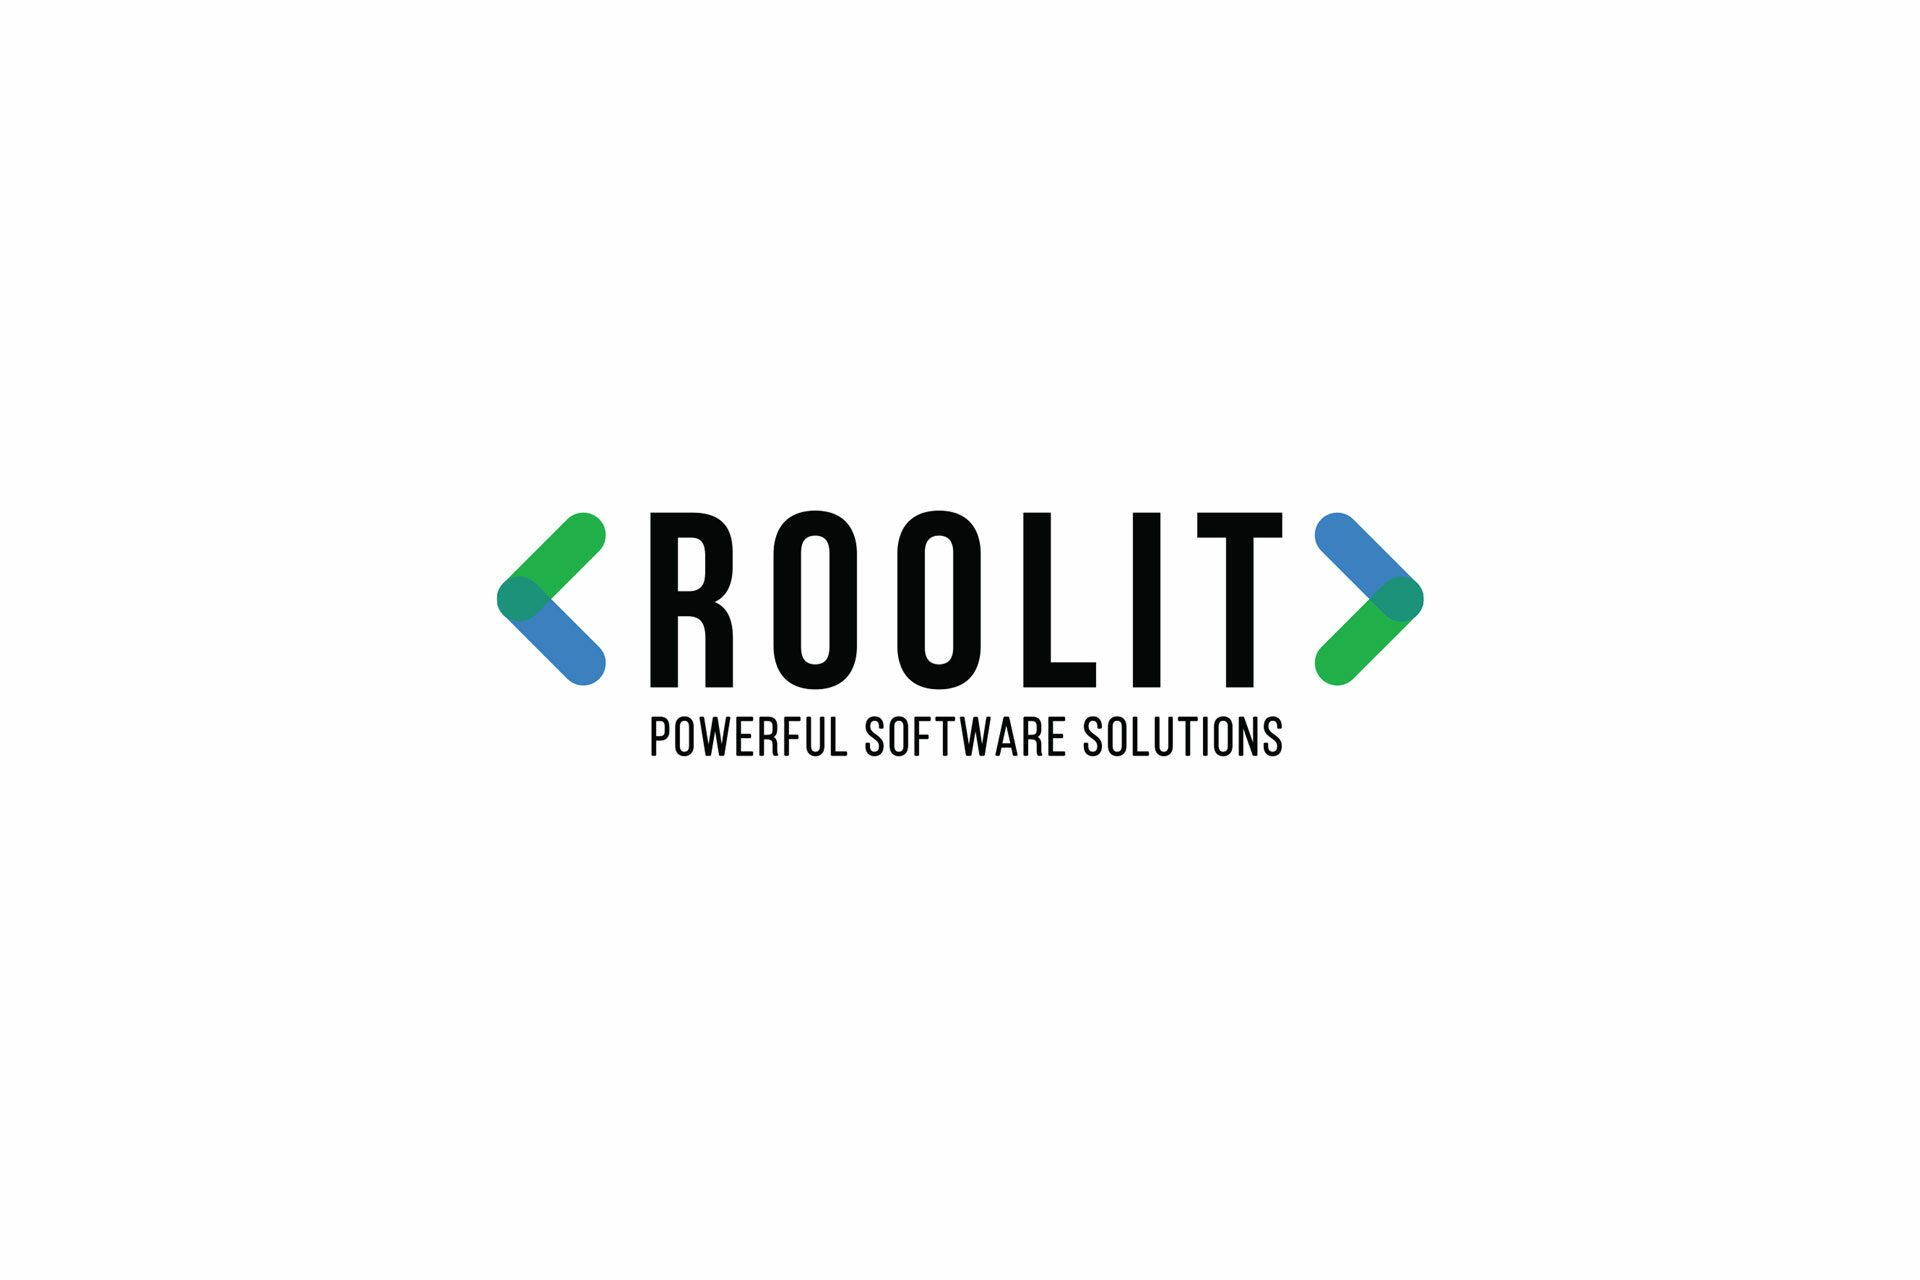 Picture Roolit Brand Identity